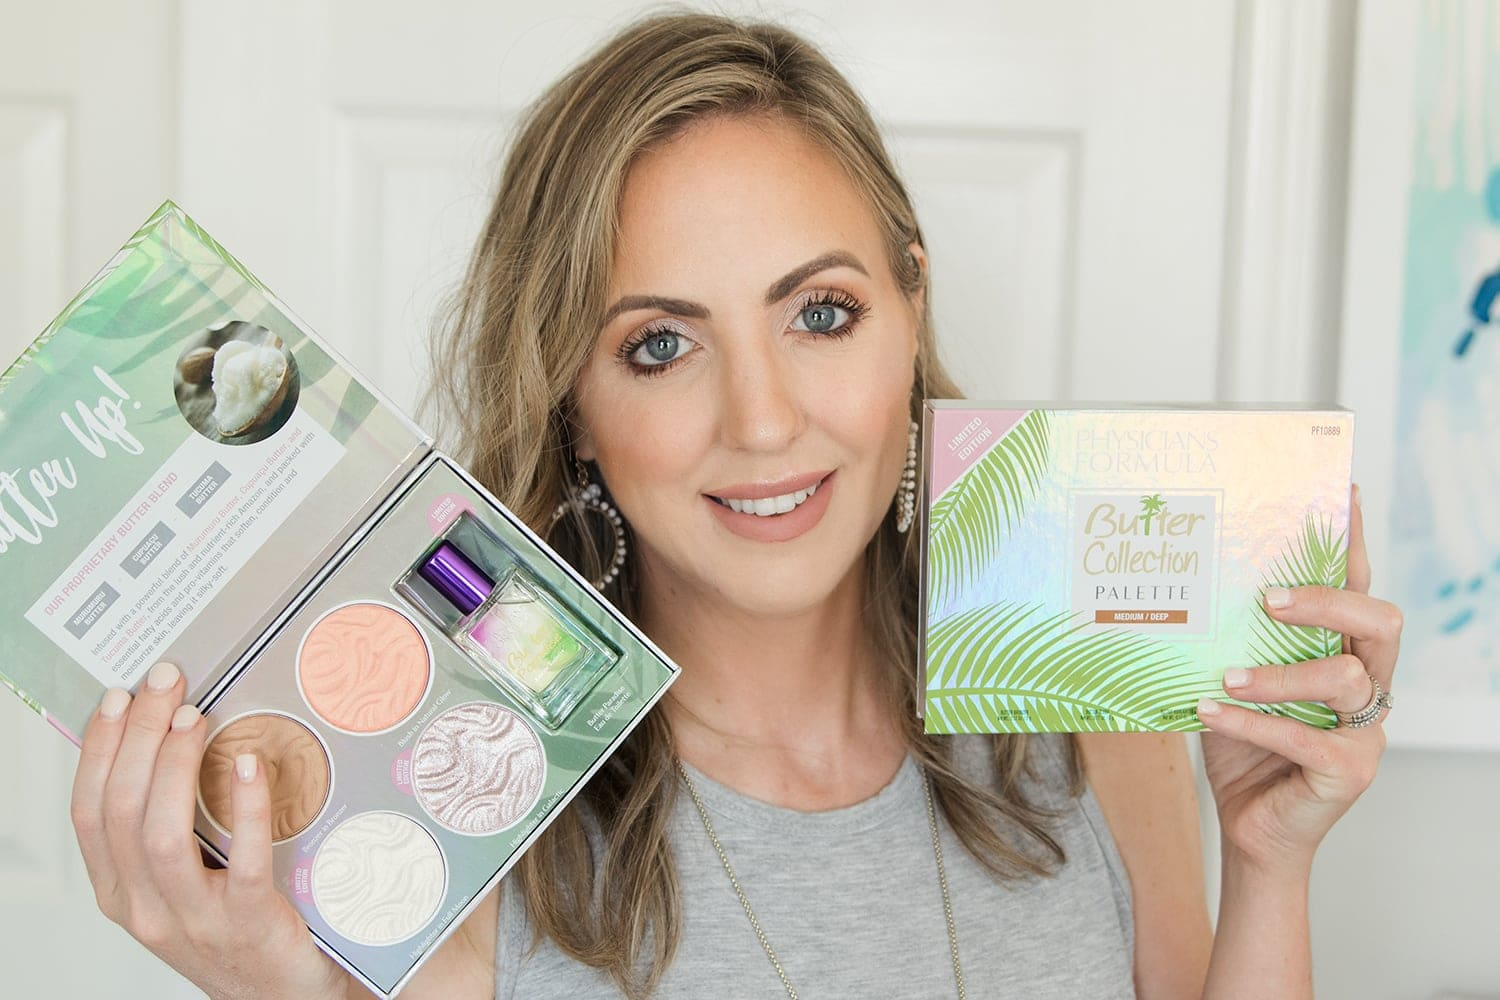 Houston beauty blogger Meg O. on the Go shares about the Physicians Formula Butter Collection palette